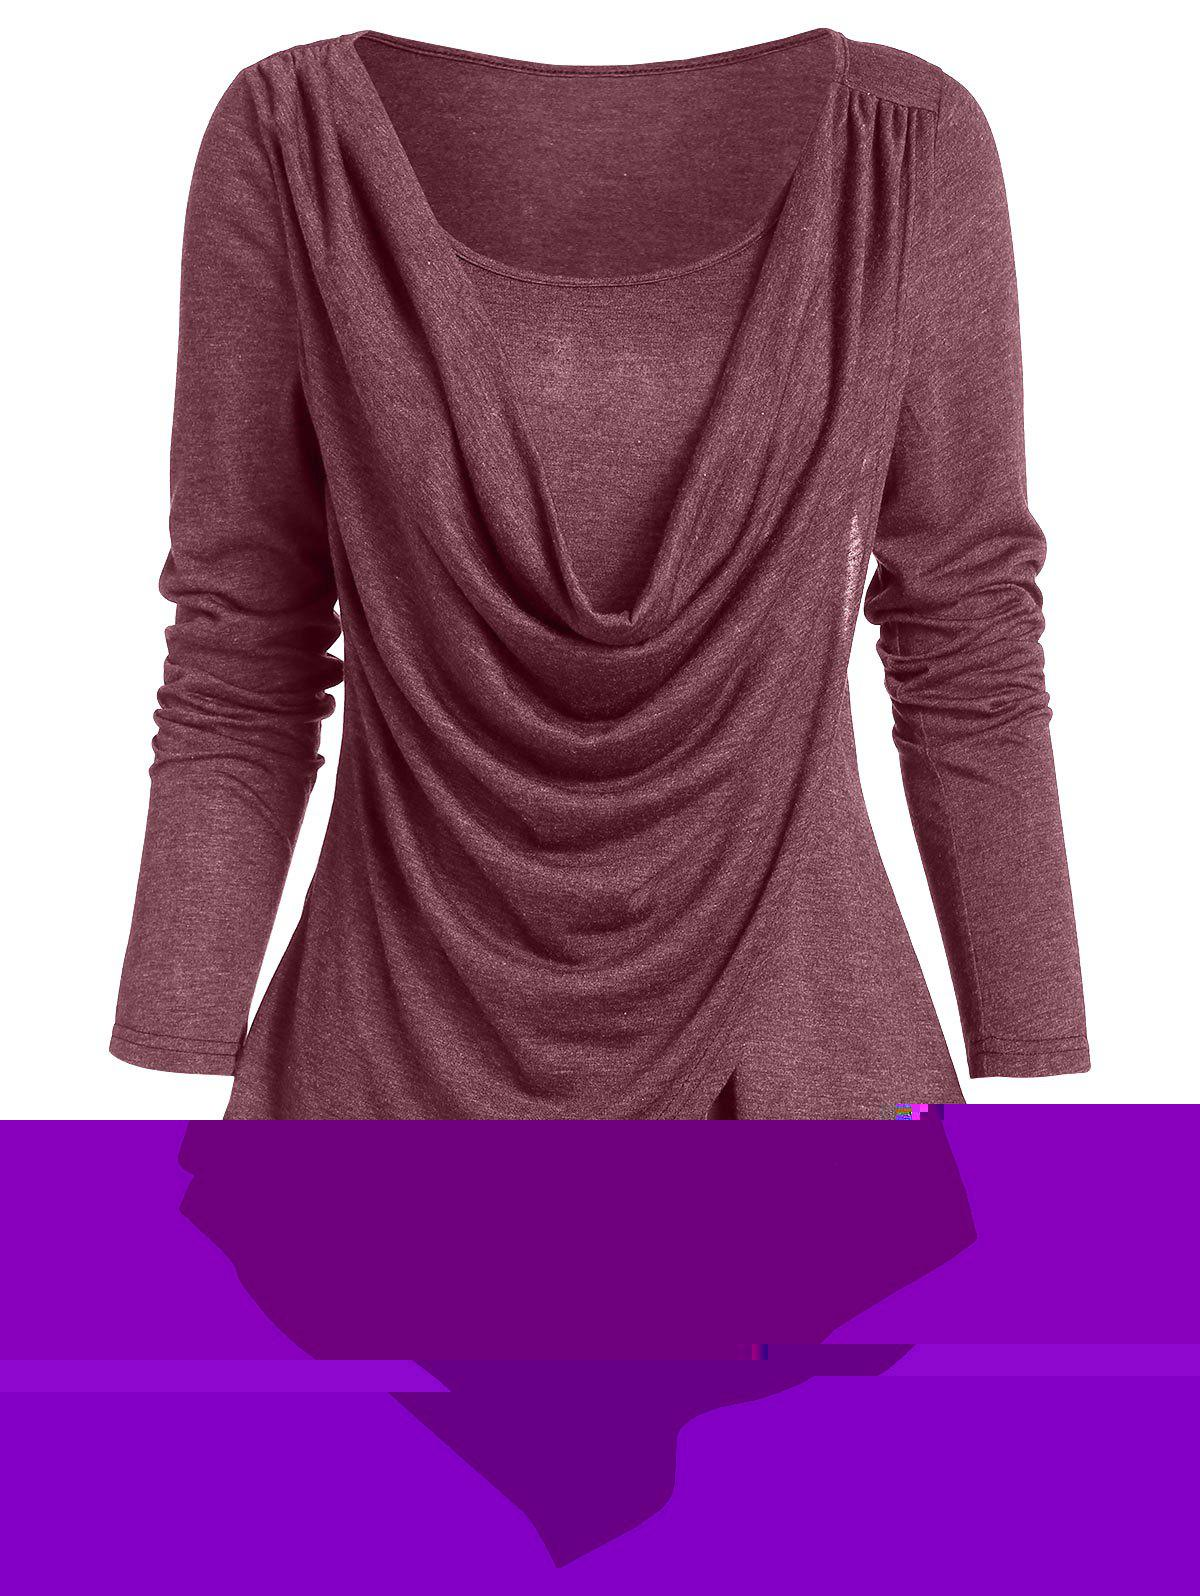 Pointed Hem Heathered Draped Overlap T-shirt - RED WINE L